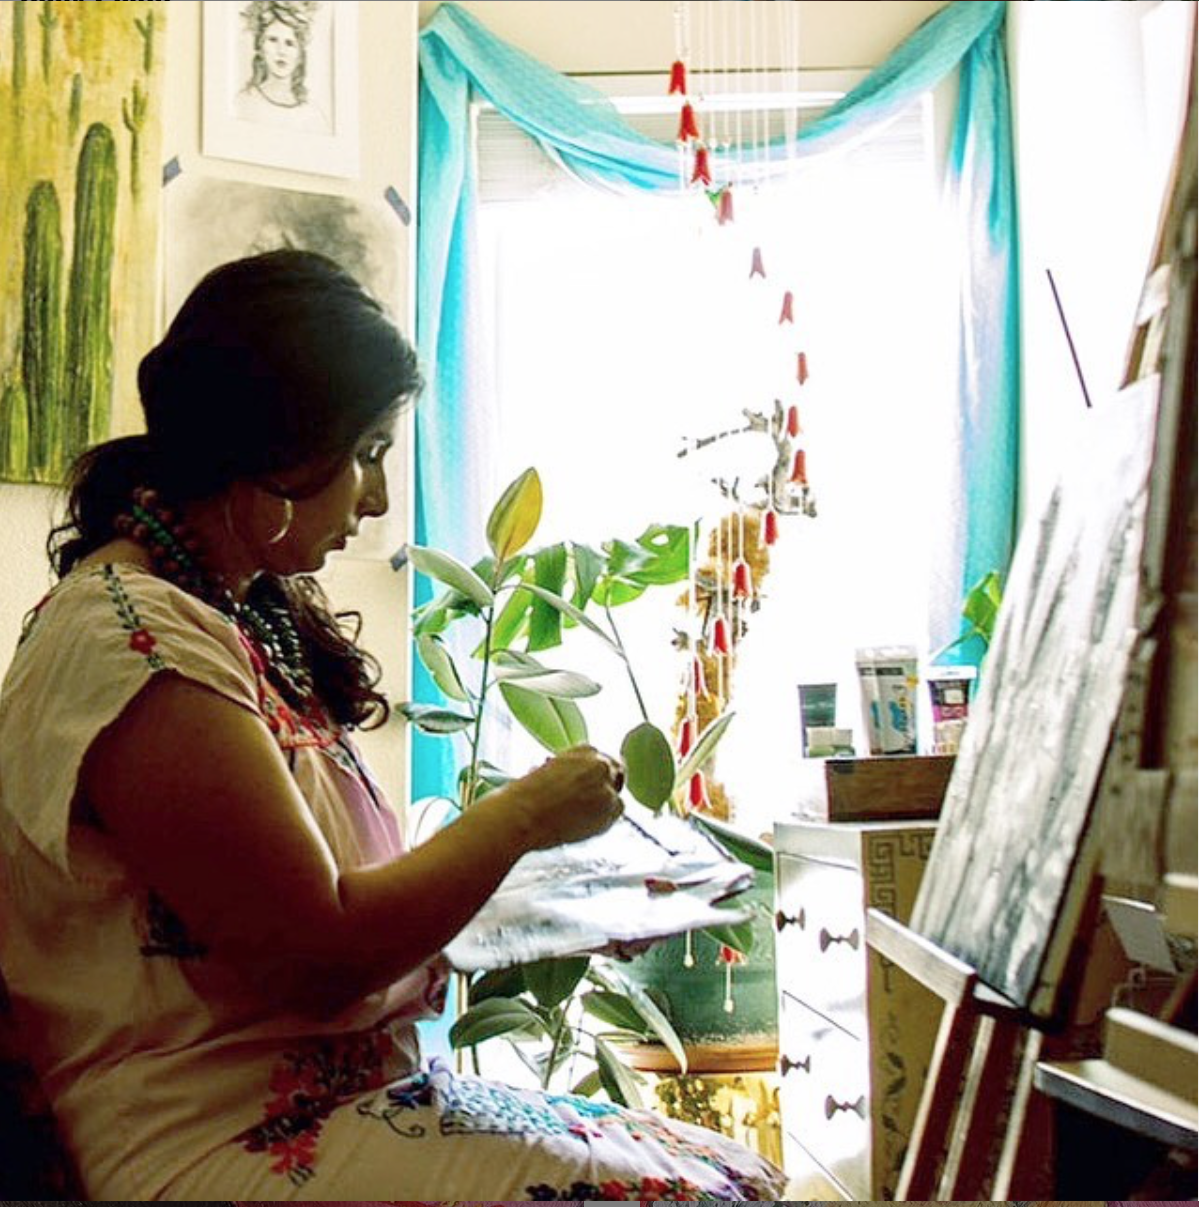 Michelle paints in a light filled room with plants around her.